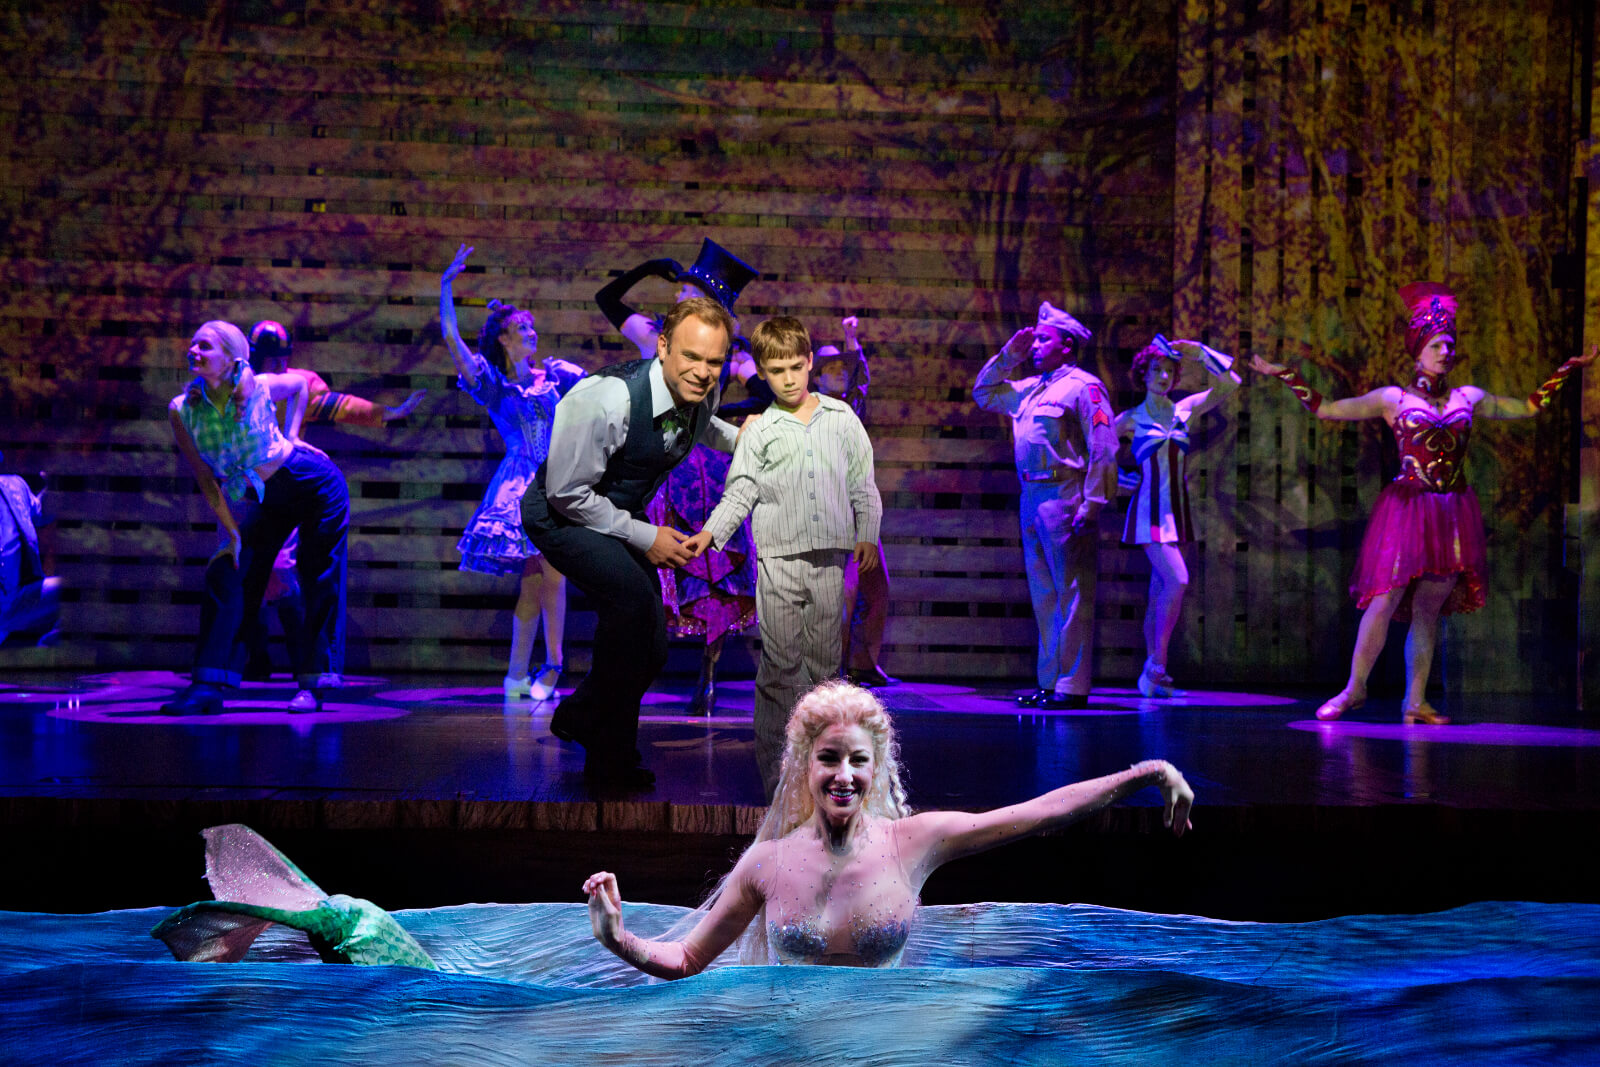 Edward Bloom (Norbert Leo Butz) shows Young Will (Zachary Unger) the mermaid (Sarrah Strimel). The mermaid appears from the water.